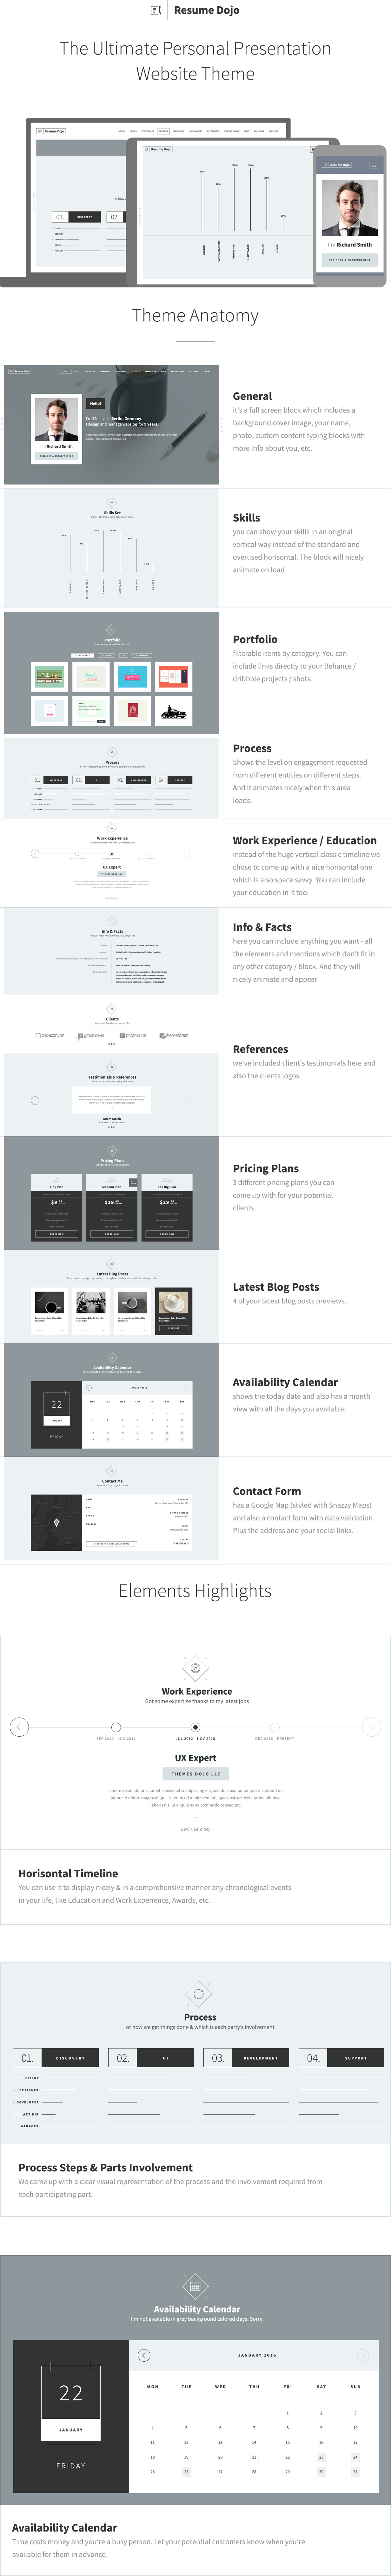 ResumeDojo - Resume and Portfolio WordPress Theme - 1